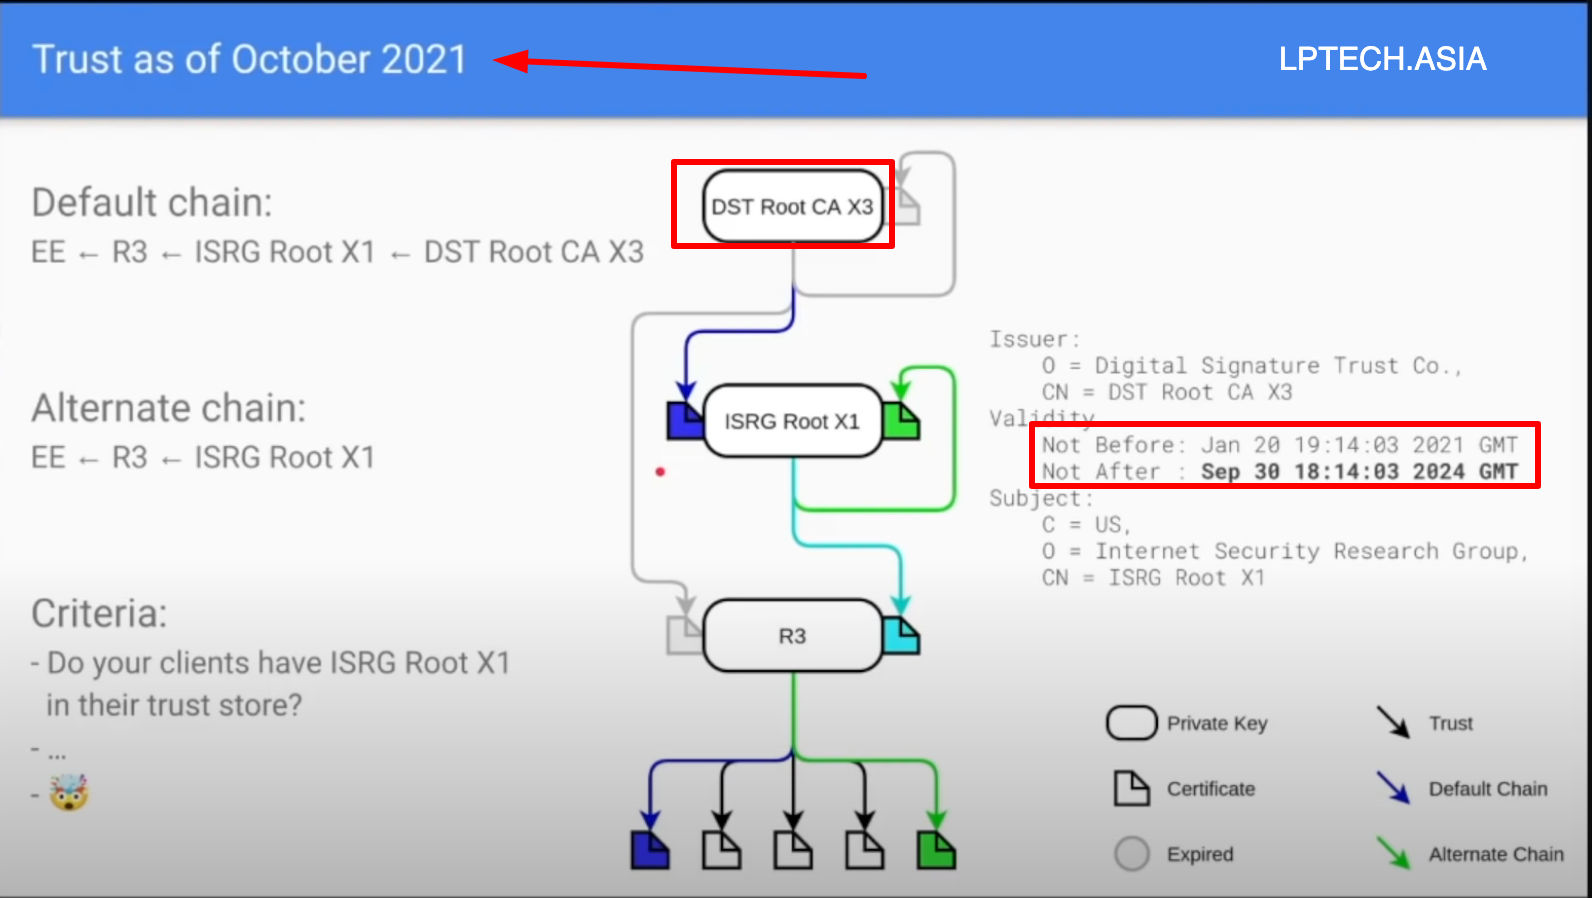 DST Root CA X3 - Sept-2021